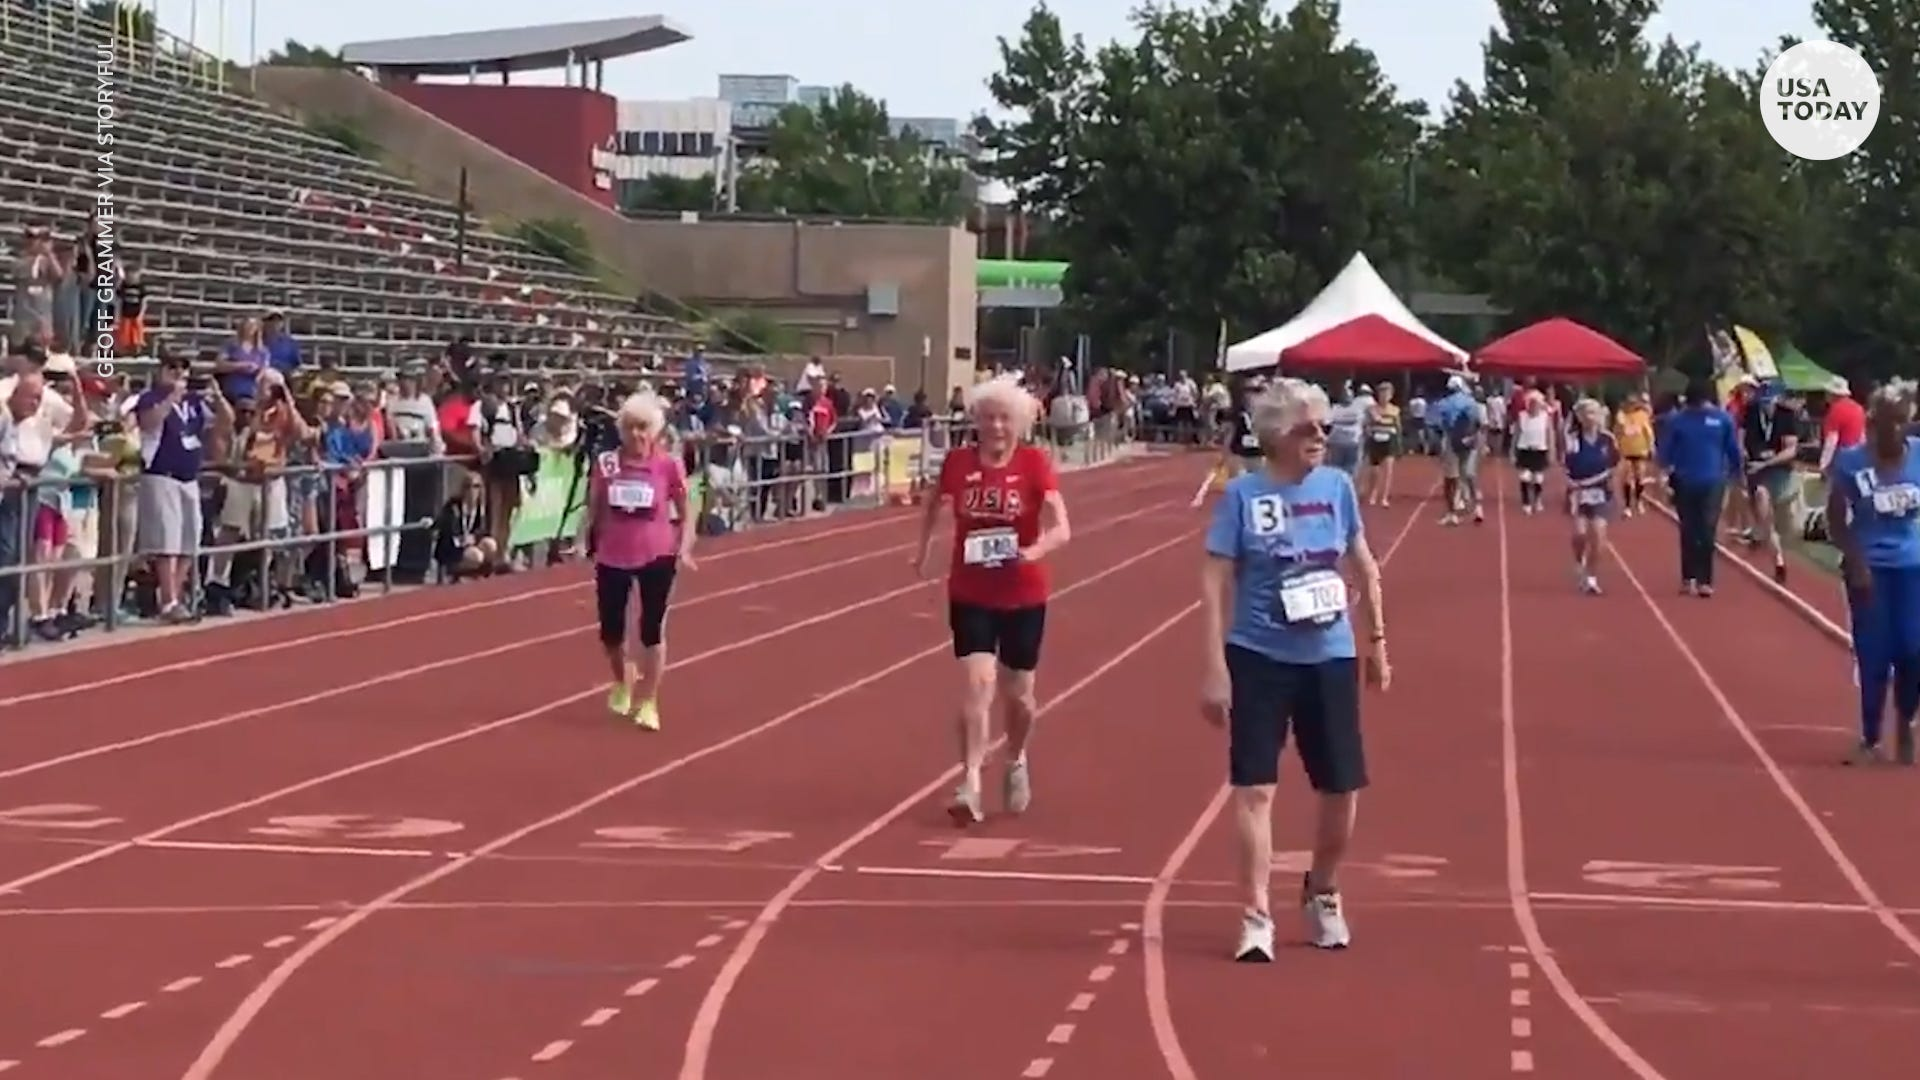 103-year-old sets world record in 50-meter dash record at the National  Senior Games